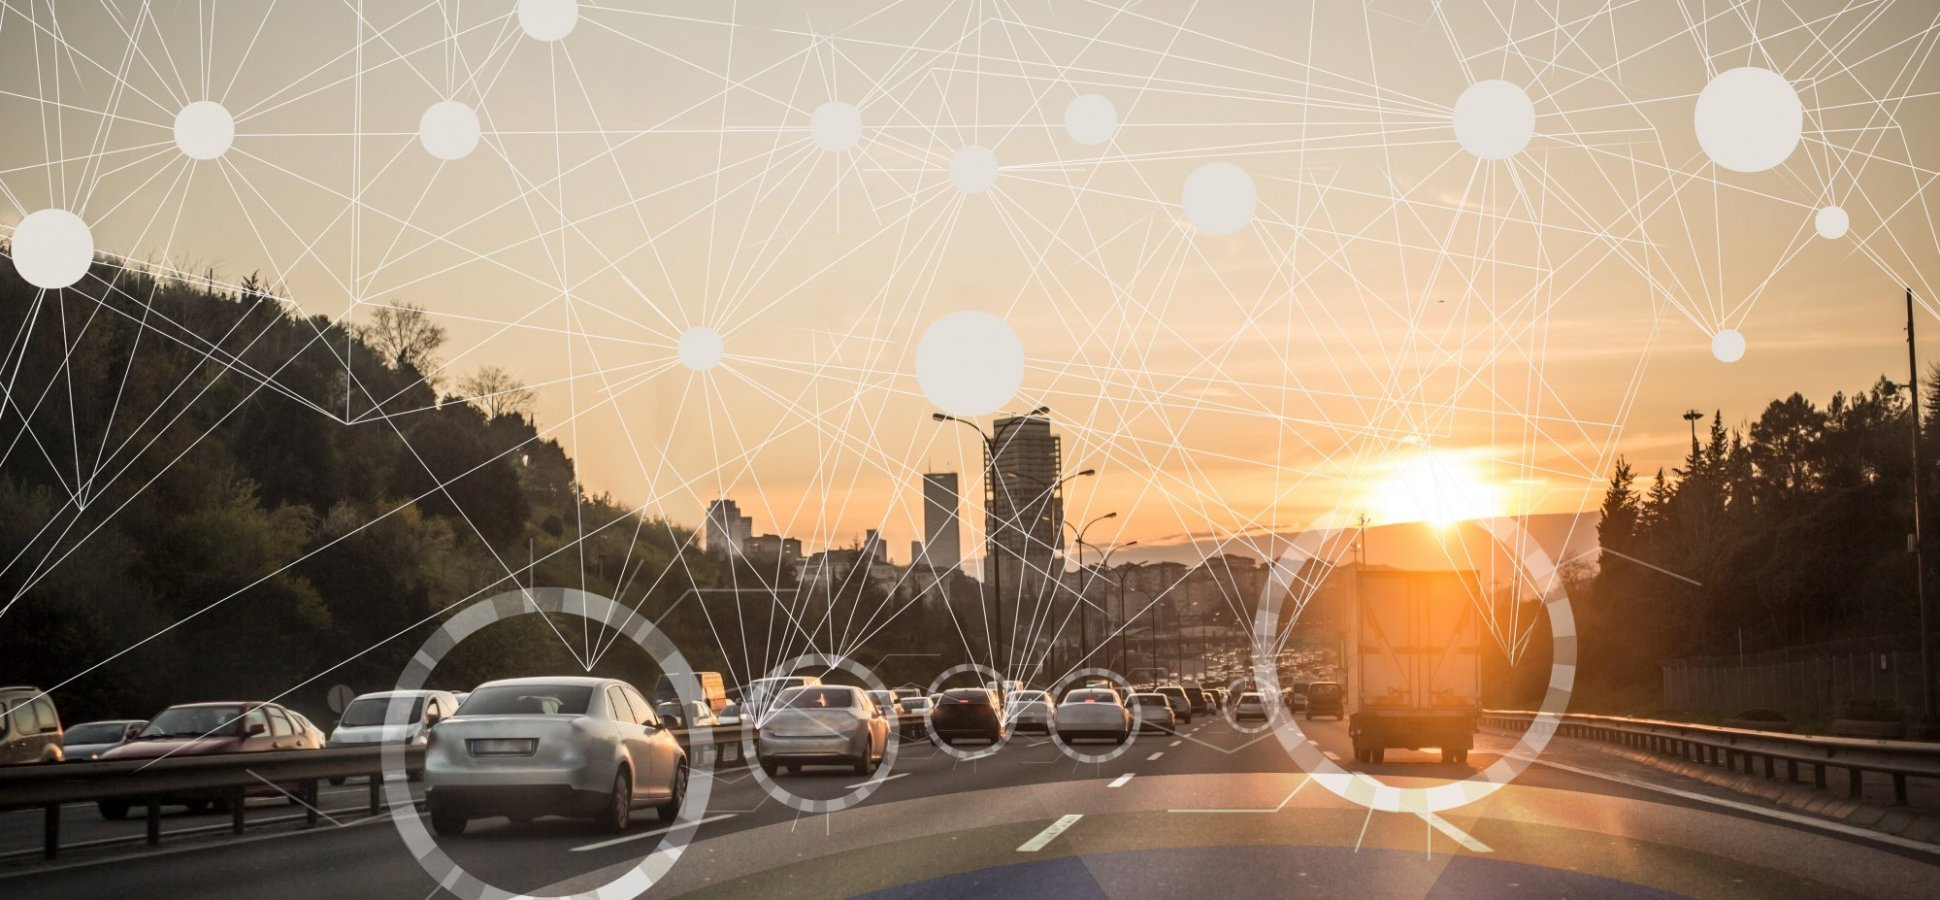 Autonomous Vehicles Are About to Create a World of Economic Opportunity